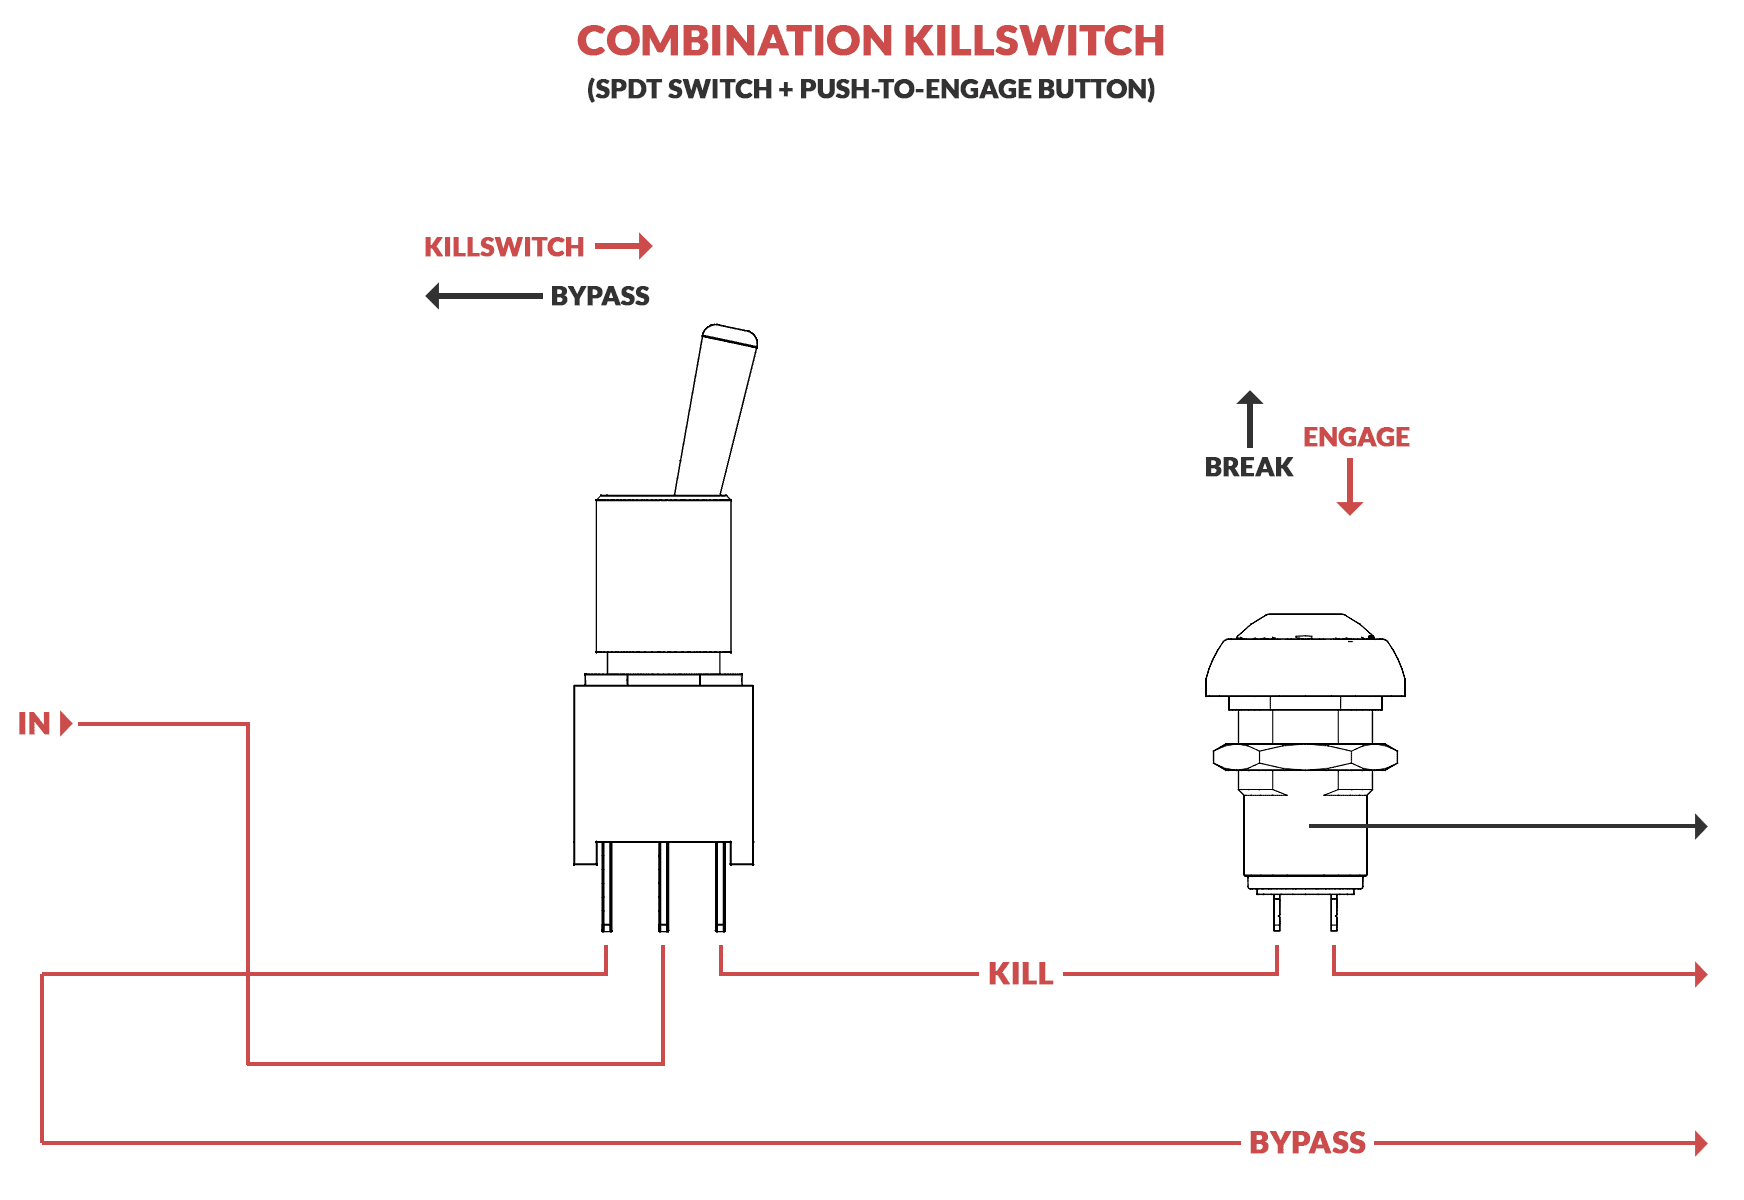 How To Build A Killswitch For Your Guitar Electric Herald Electrical Switch Wiring Guide Circuit Modification Guitars That Combines An Spdt And No Momentary